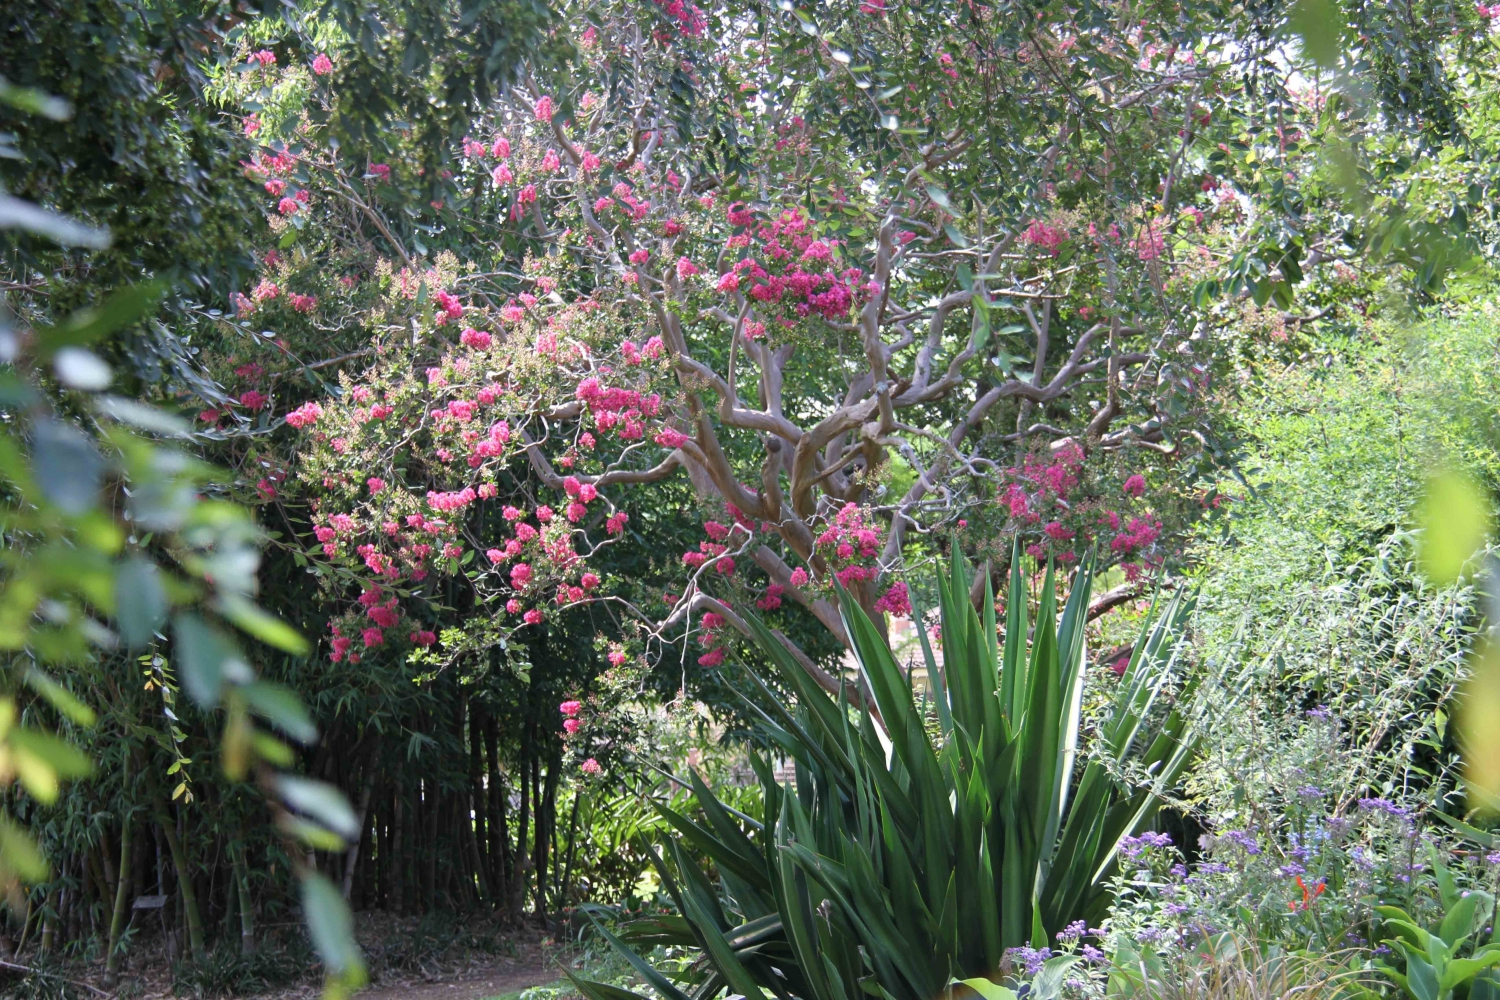 Flowering crepe myrtle and bamboo